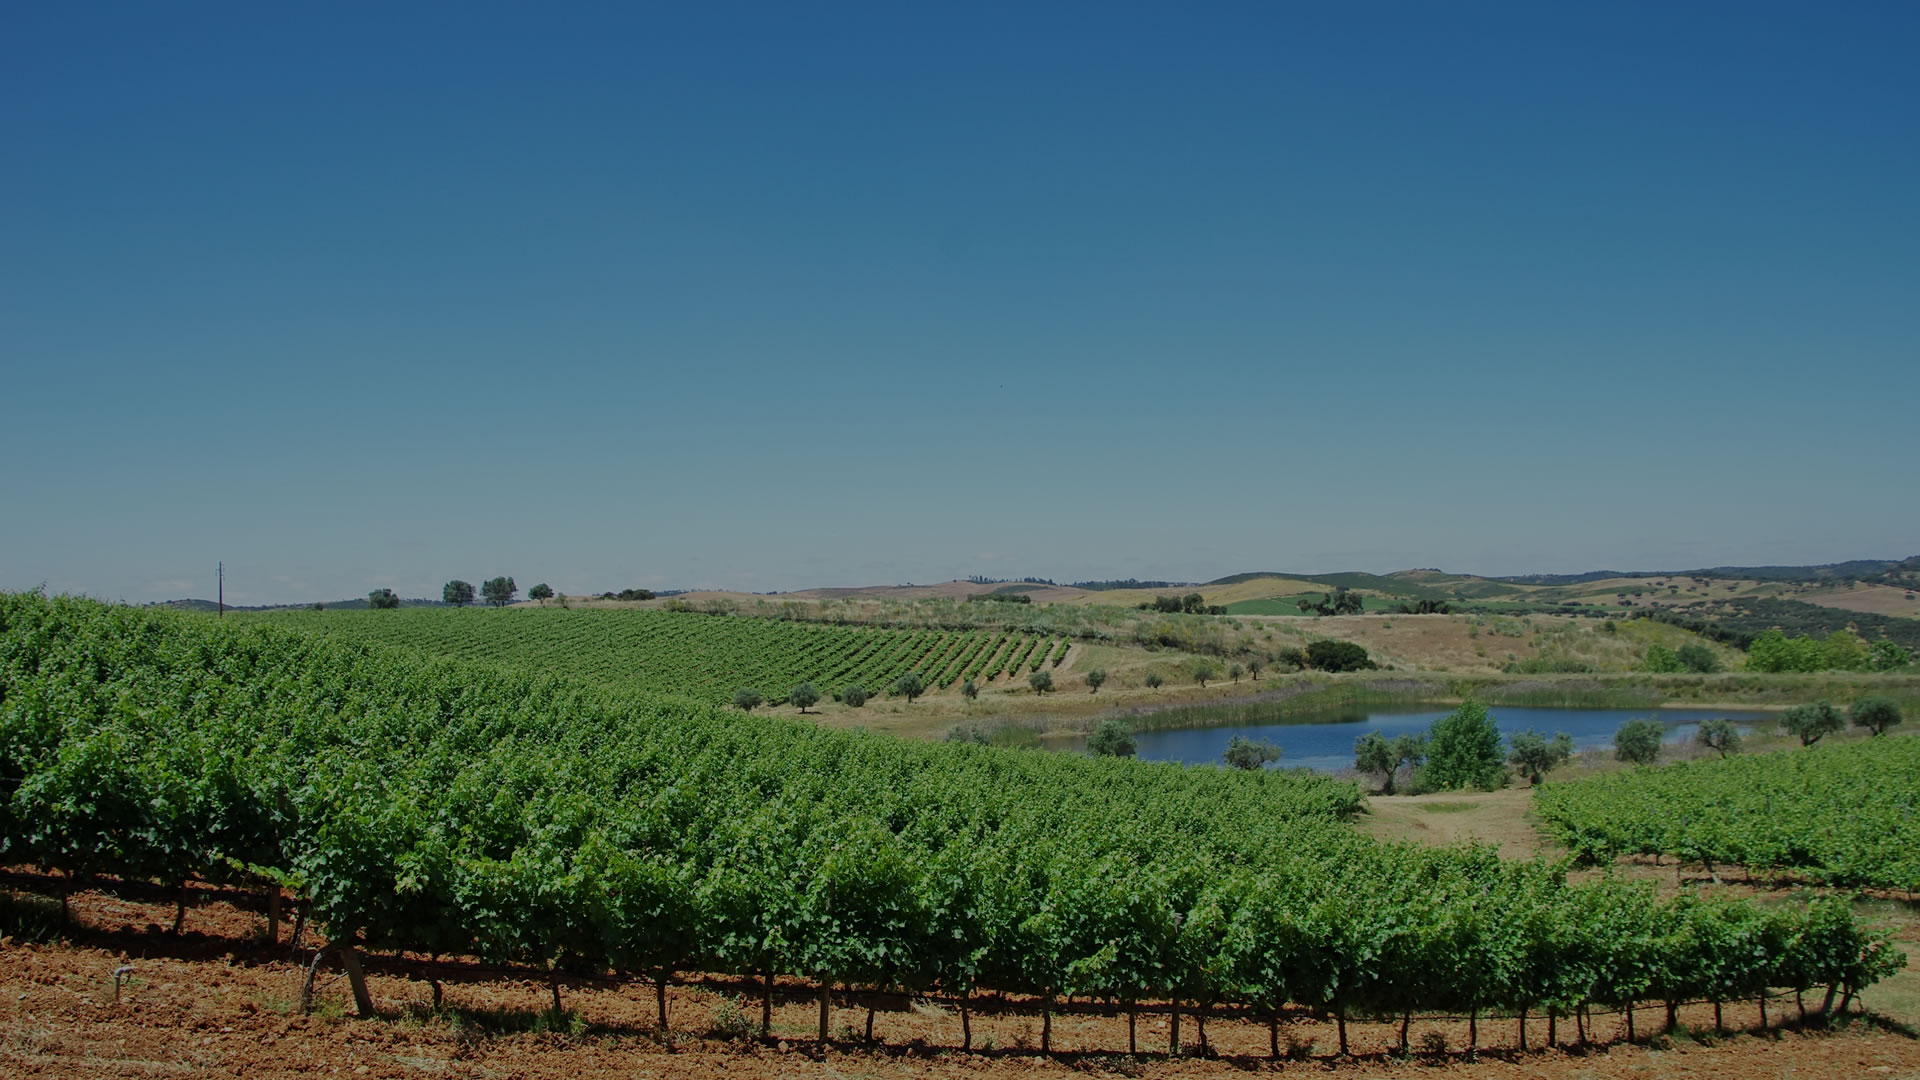 Portugal has a long wine history and traditions dating from times earlier than the country's foundation.